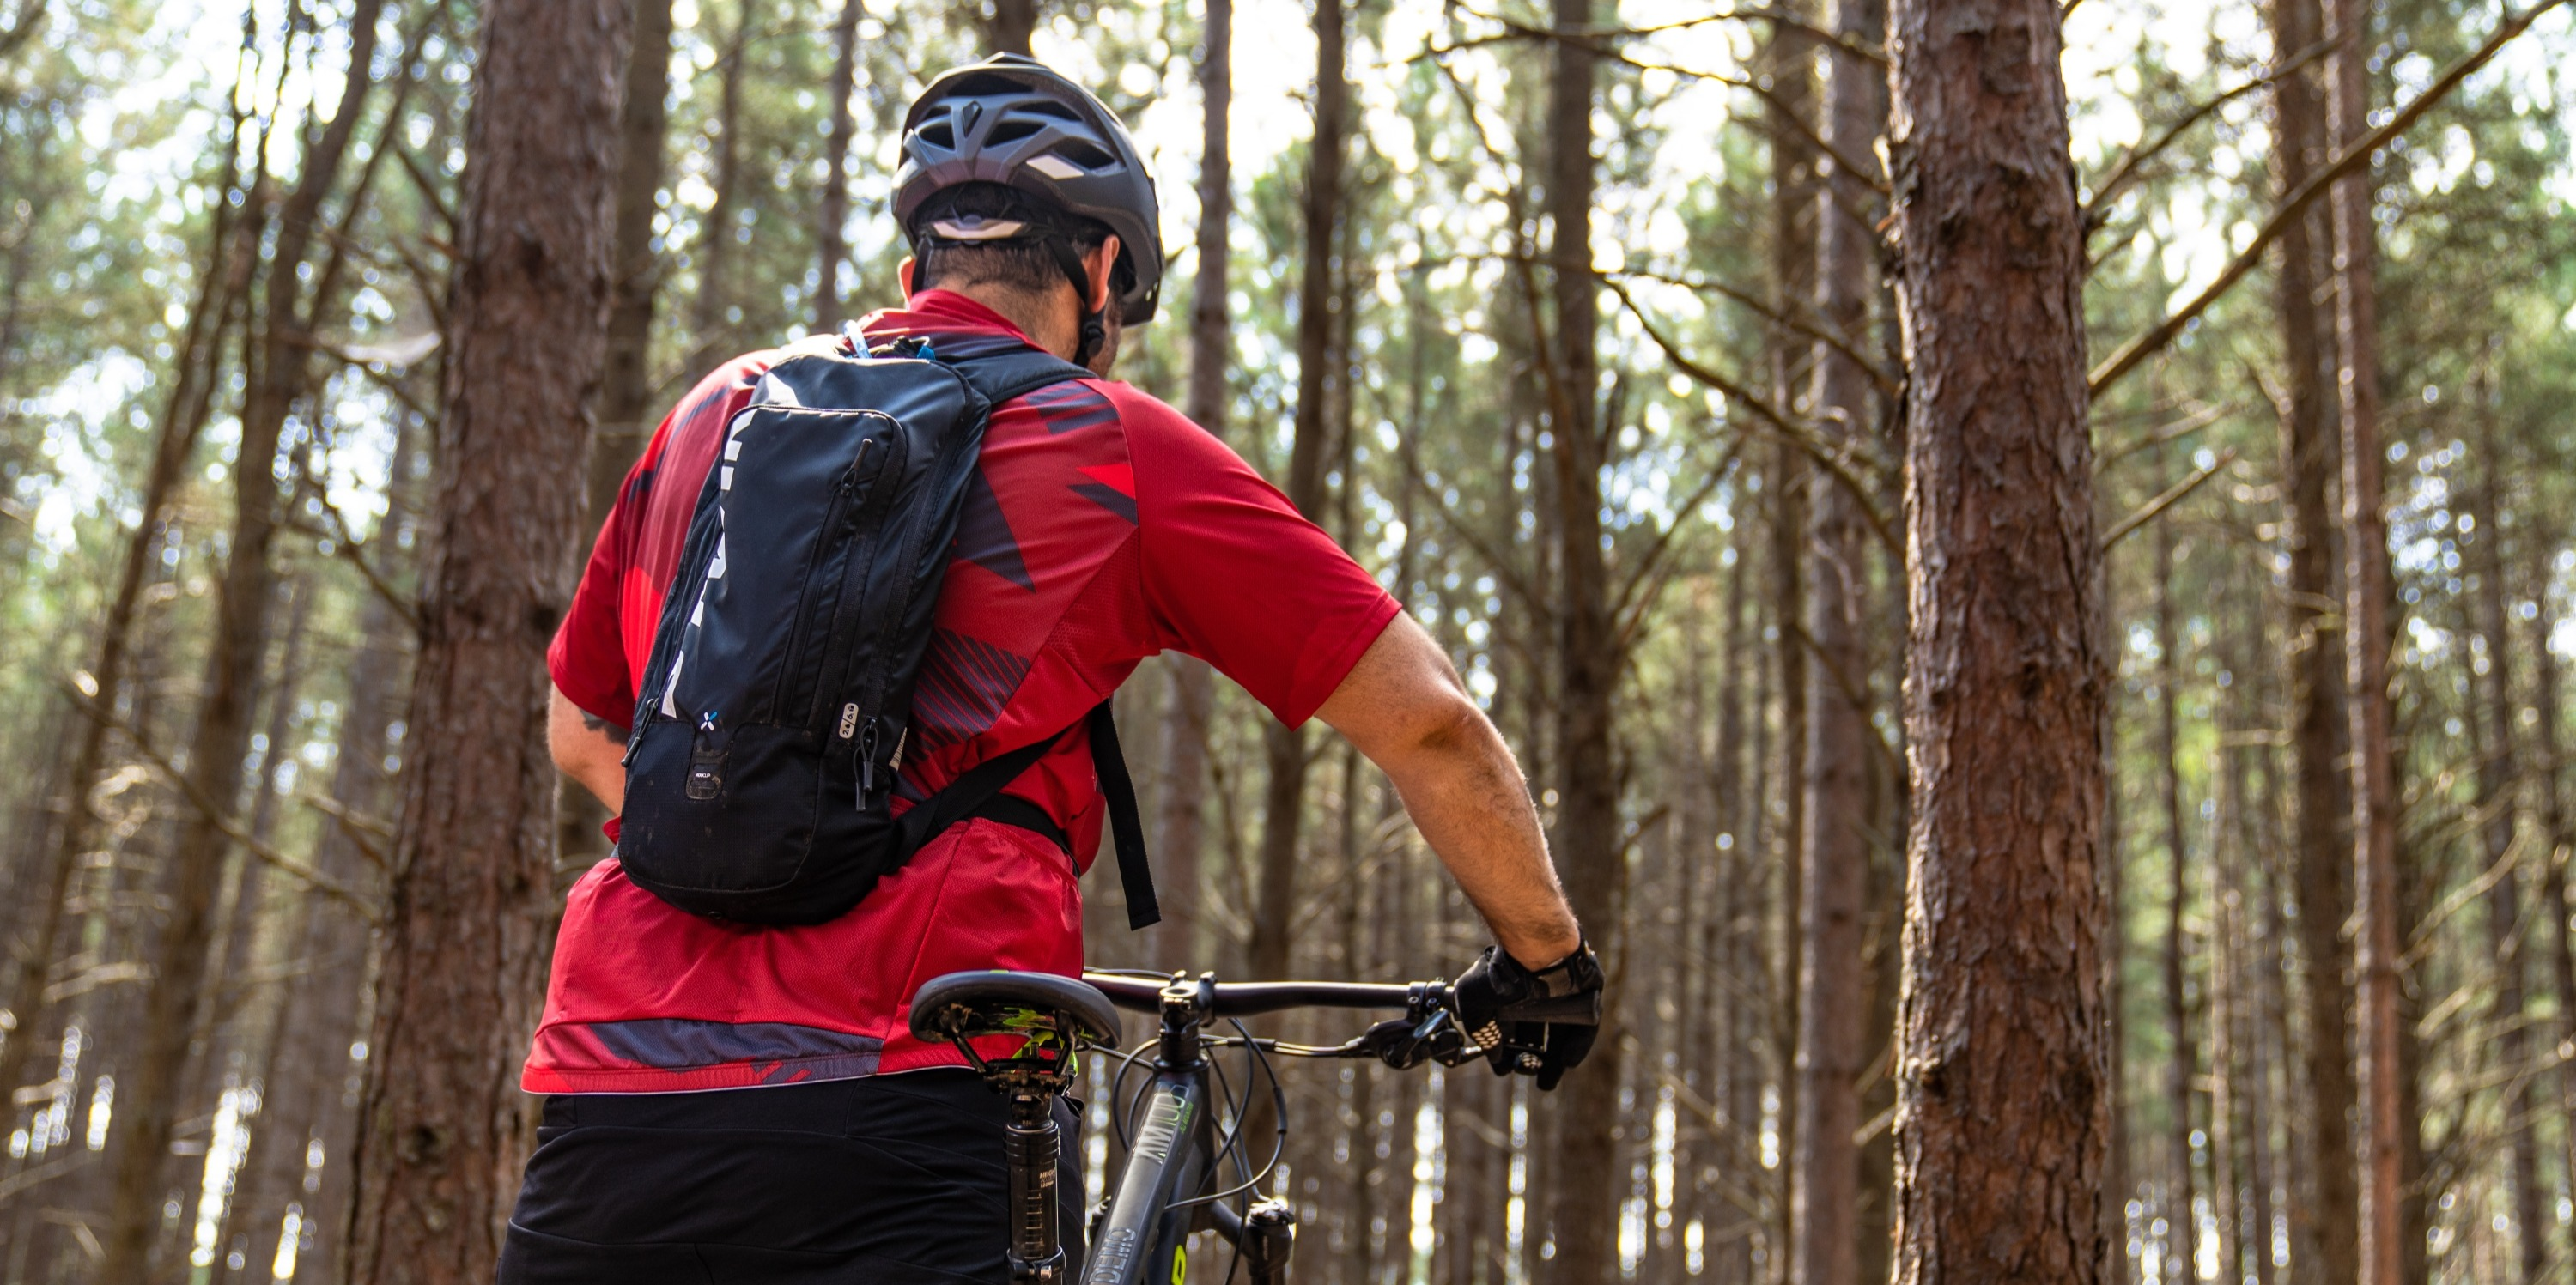 The Best Places To Start Mountain Biking